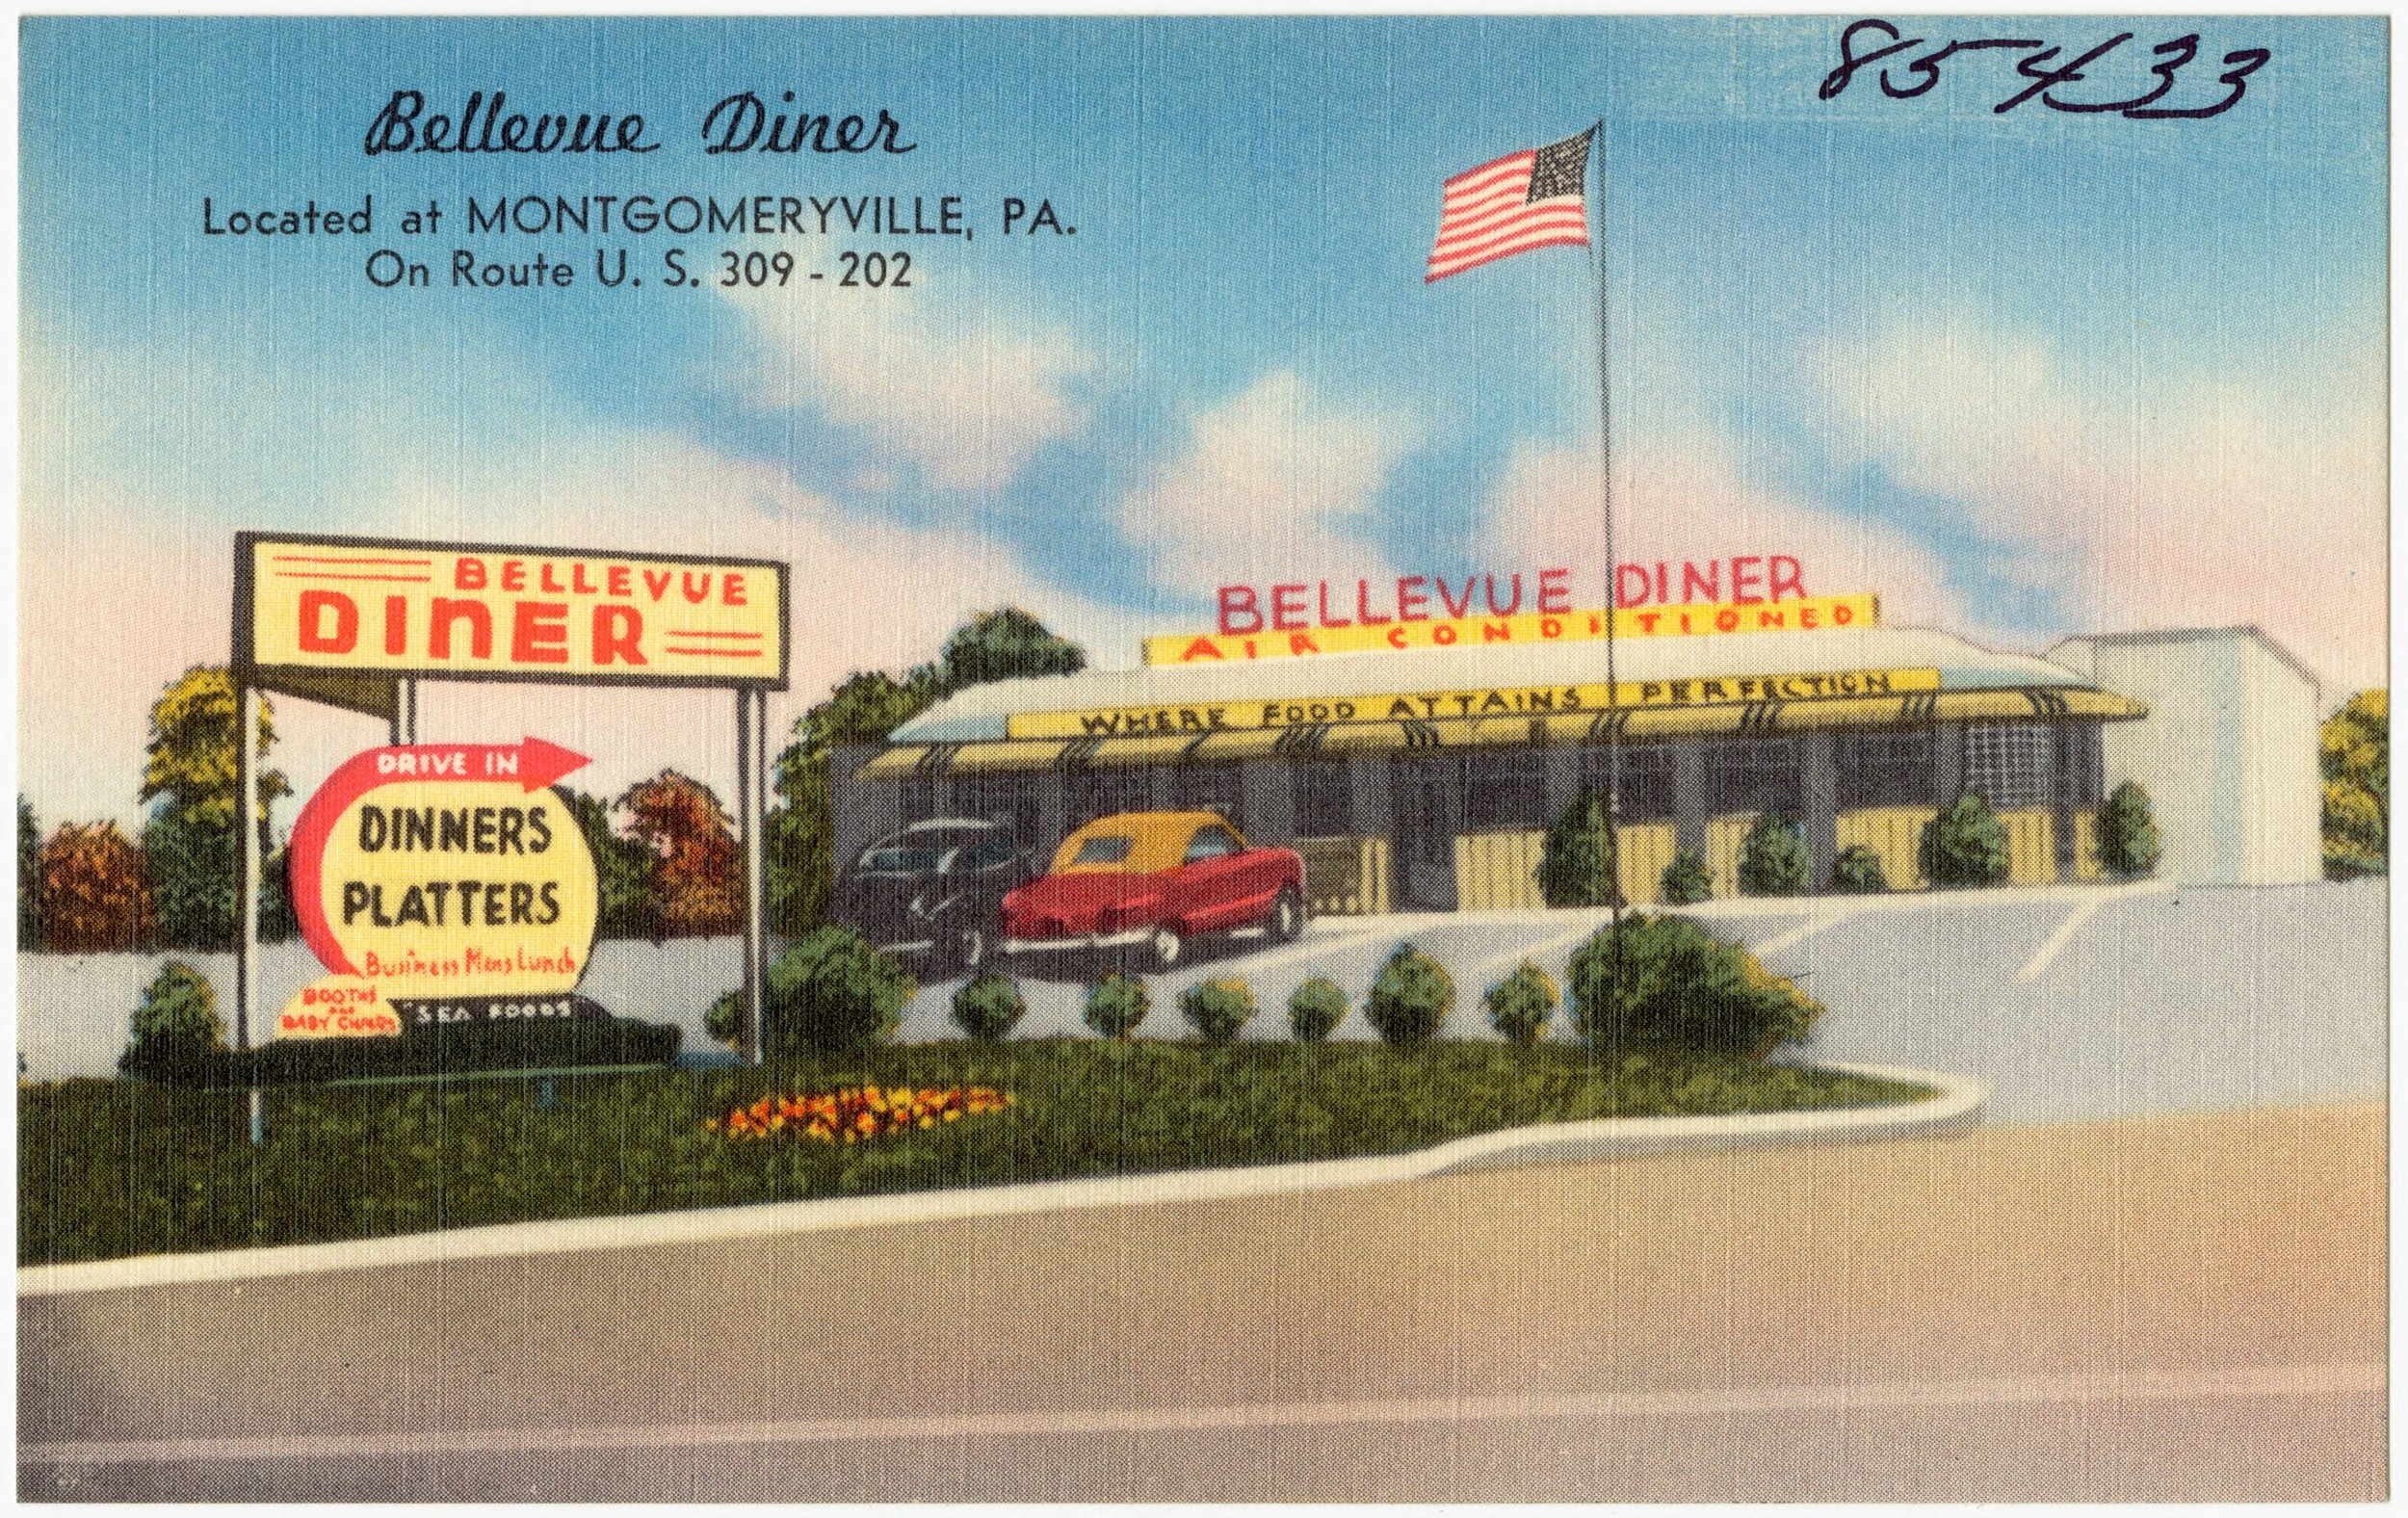 Bellevue_Diner,_located_at_Montgomeryville,_PA.,_on_Route_U.S._310_-_202_(85433).jpg